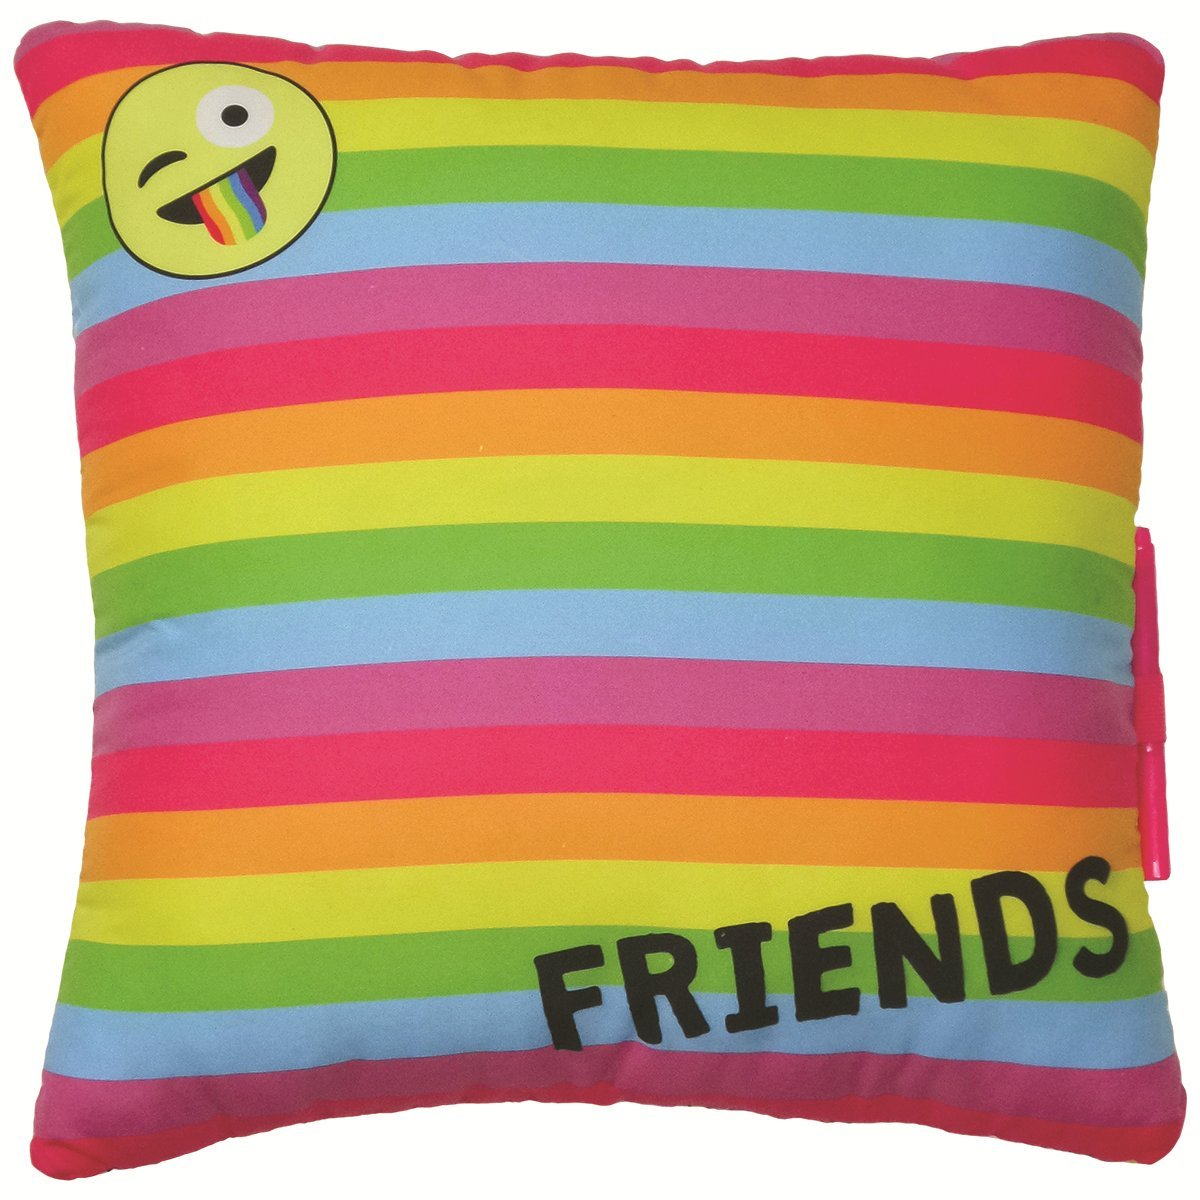 iscream Emoji Party Souvenir Autograph Pillow for Parties, Camp, and More! by iscream